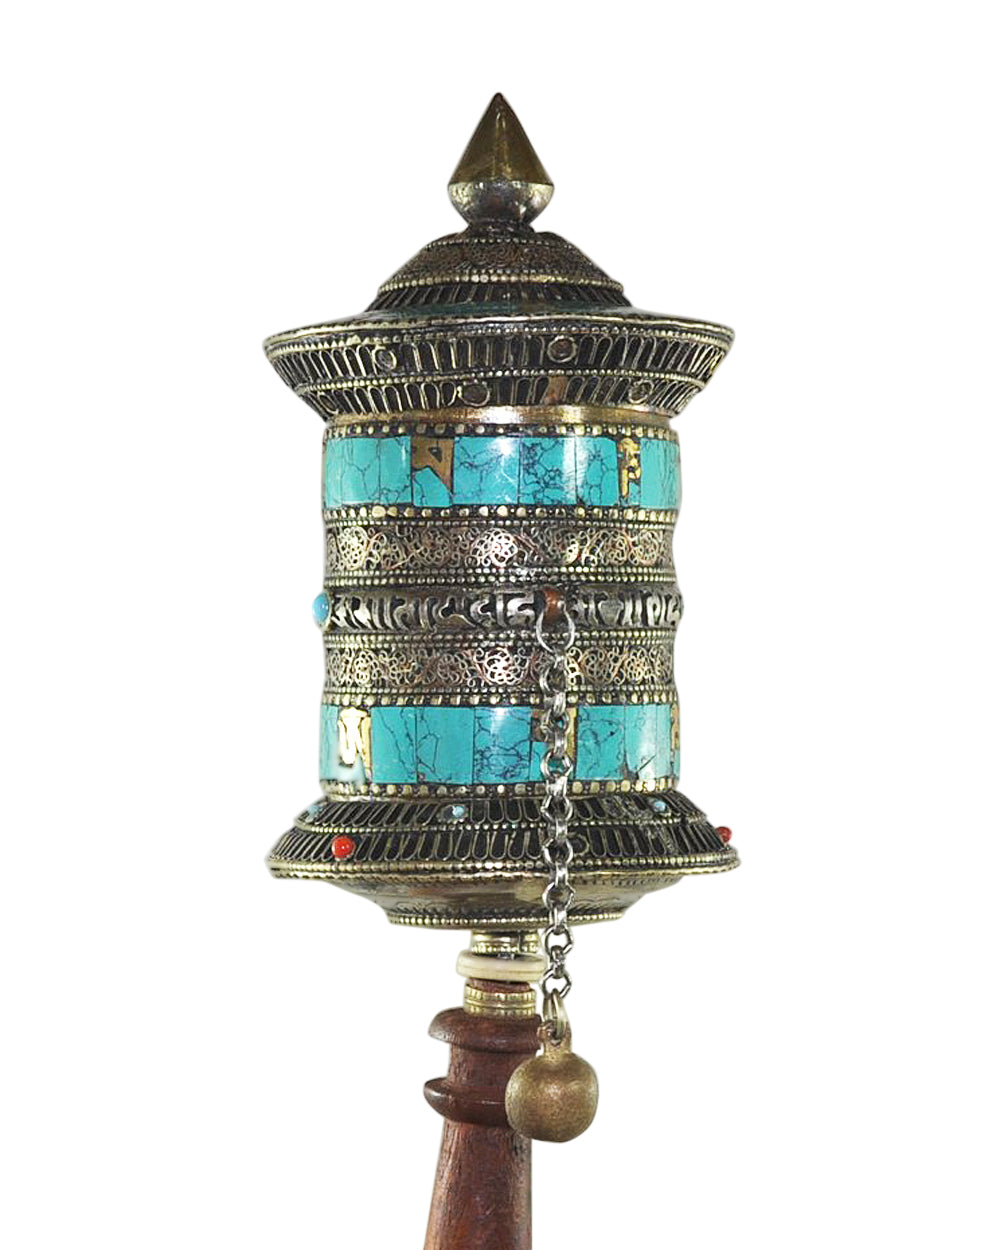 One of a Kind Dharma Om Mani Padme Hum Mantra Tibetan Prayer Wheel - Collector Item